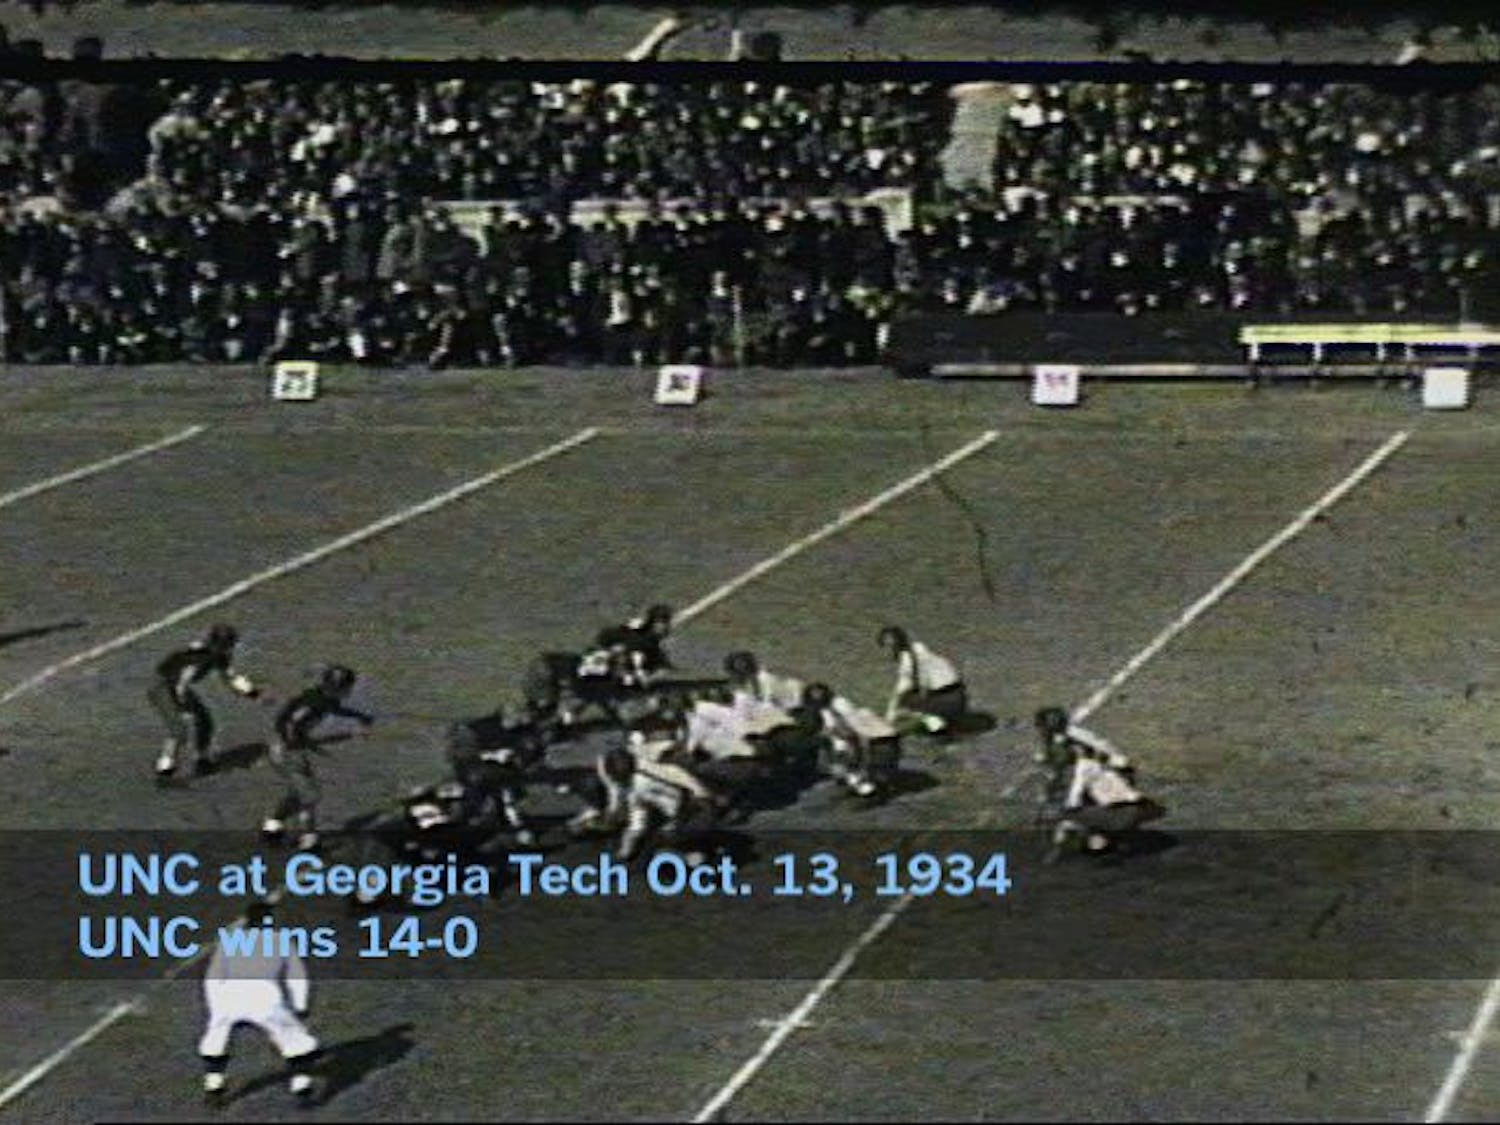 """This Saturday, Wilson Library will host a showing of """"Gridiron Glory,"""" a film highlighting UNC football games throughout the 20th century. Courtesy of Wilson Library special collections."""